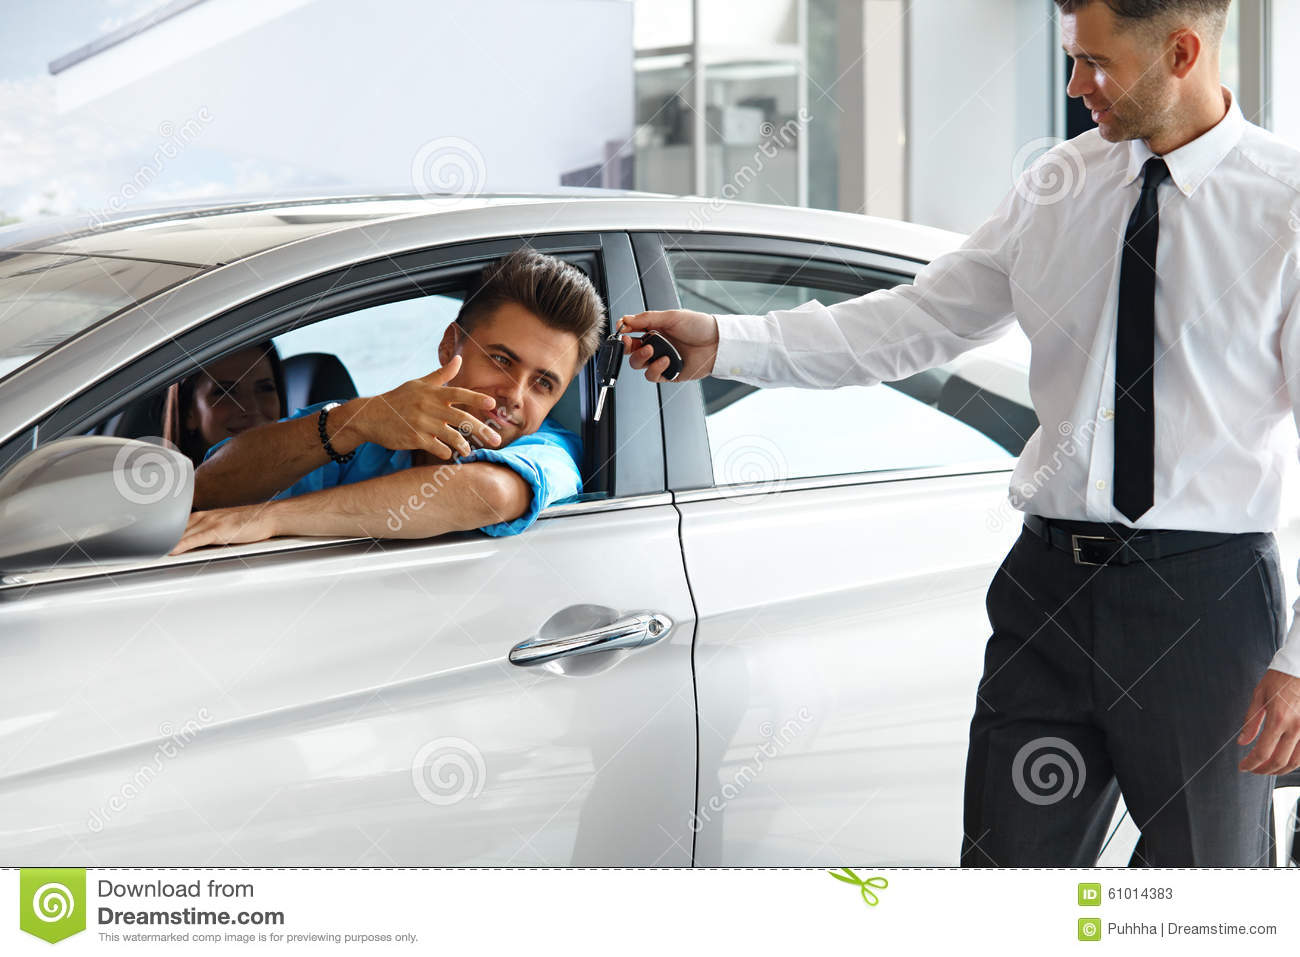 The car salesman